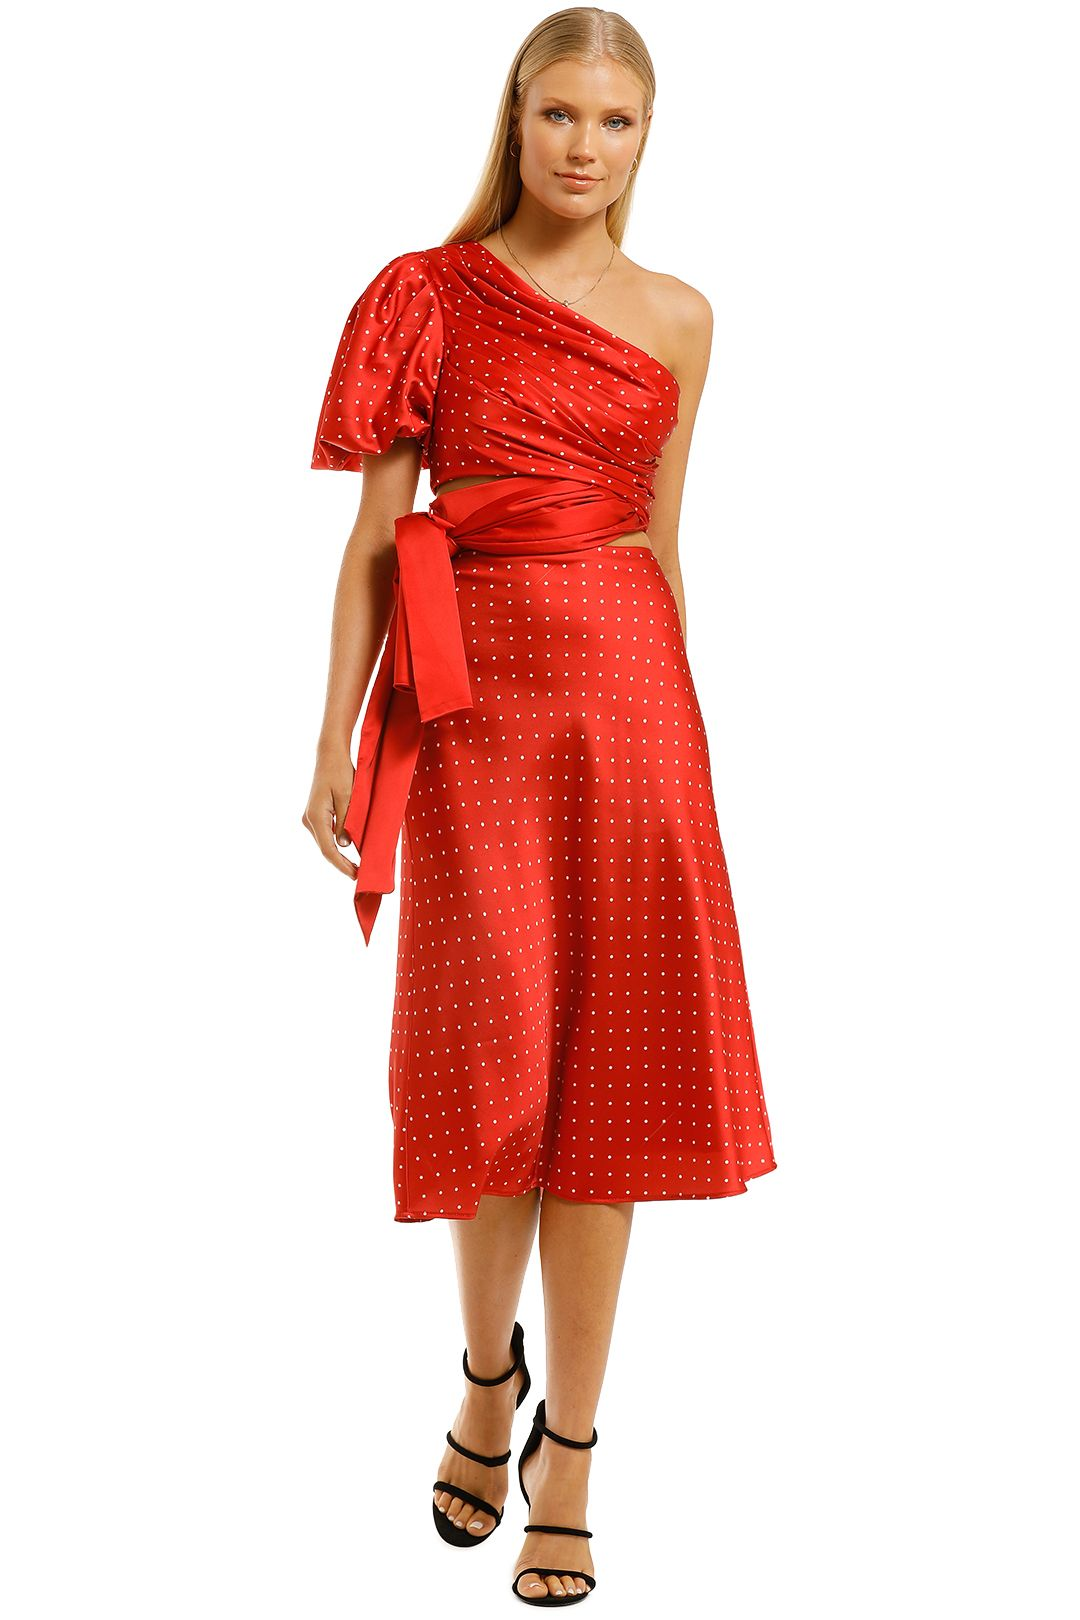 Misha-Dellie-Skirt-and-Toria-Top-Set-Red-Spot-Front